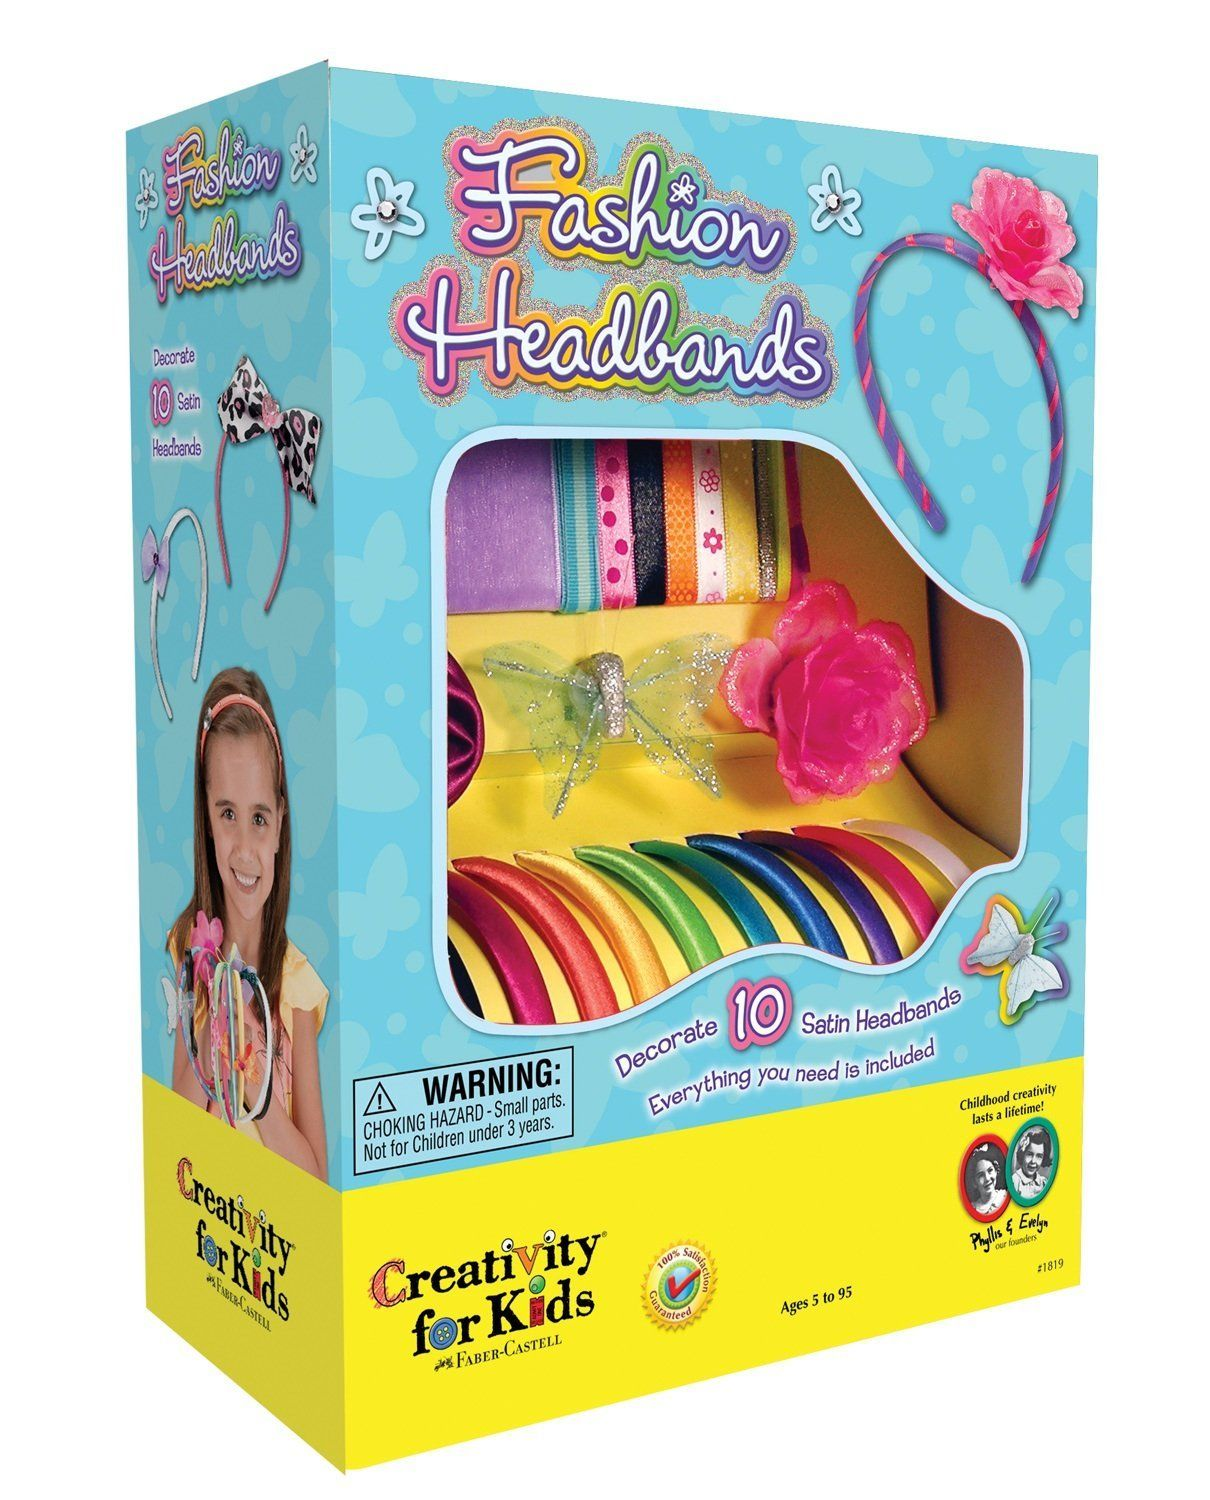 Best Gifts for 6 Year Old Girls in 2017 | Headband crafts ...